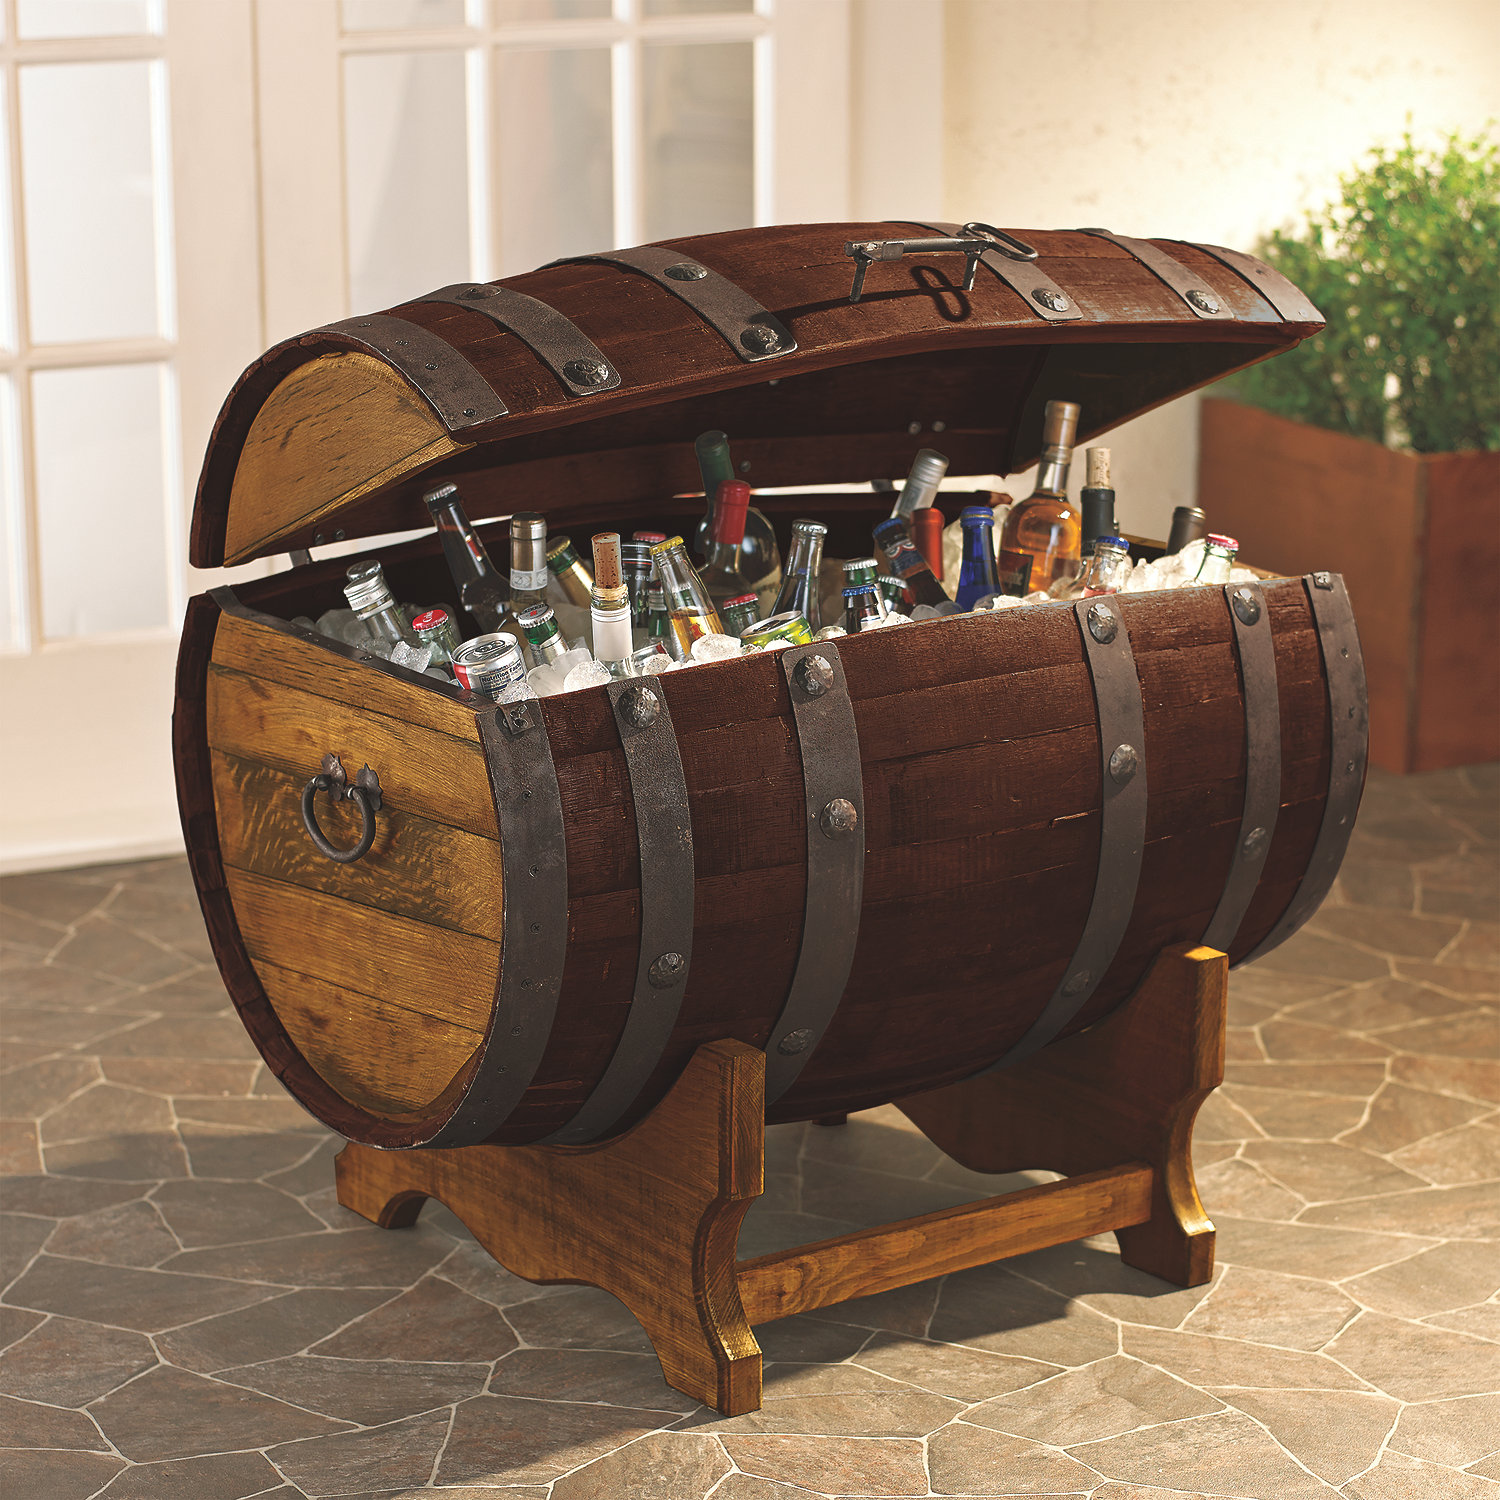 Reclaimed Tequila Barrel Ice Chest and Stand (Large) - Wine Enthusiast